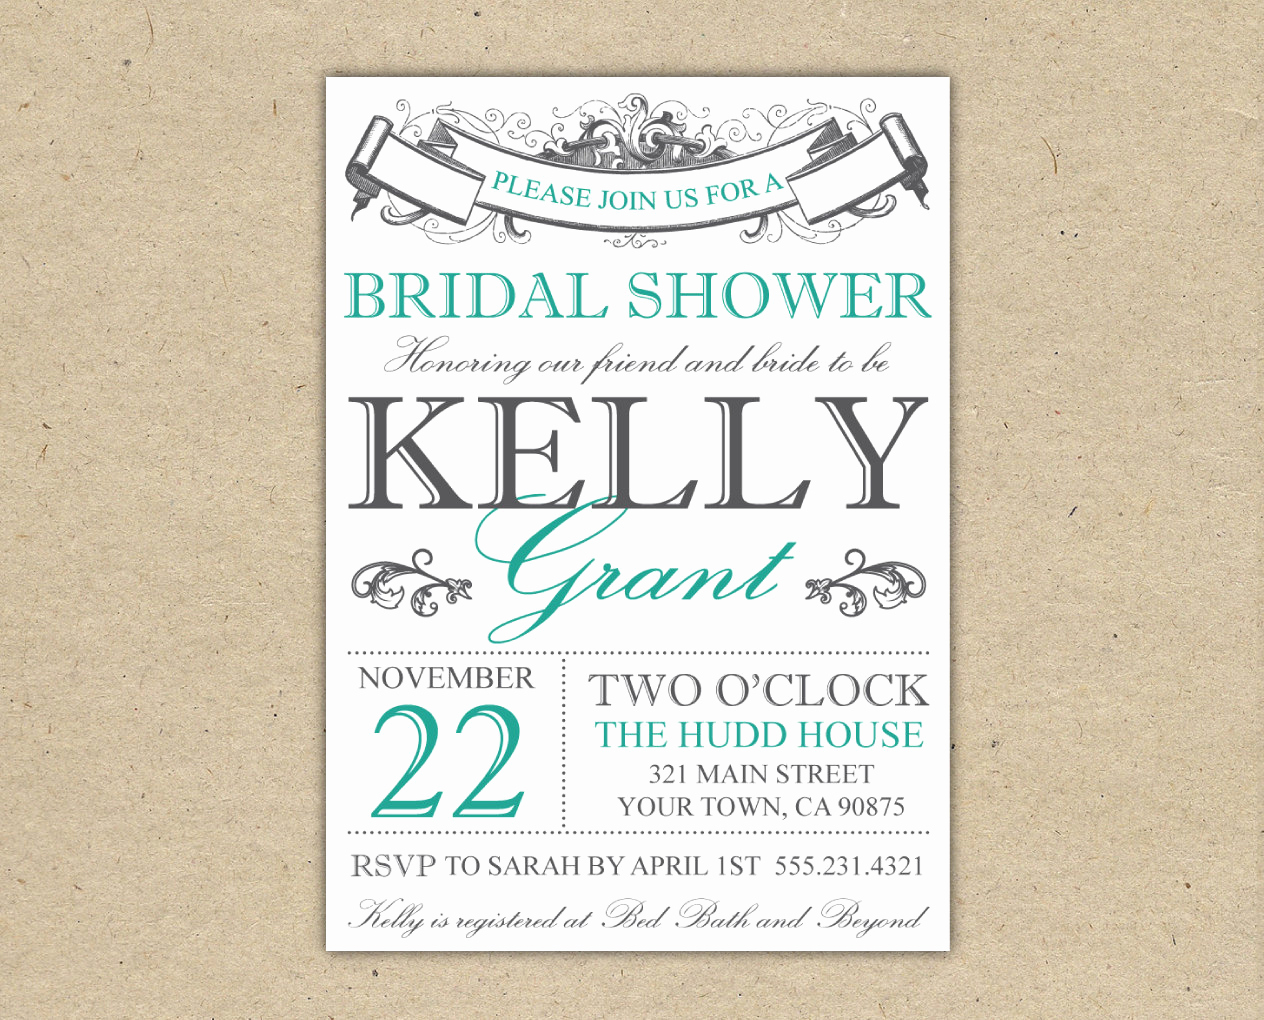 Bridal Shower Invitation Templates Best Of Bridal Shower Invitation Templates